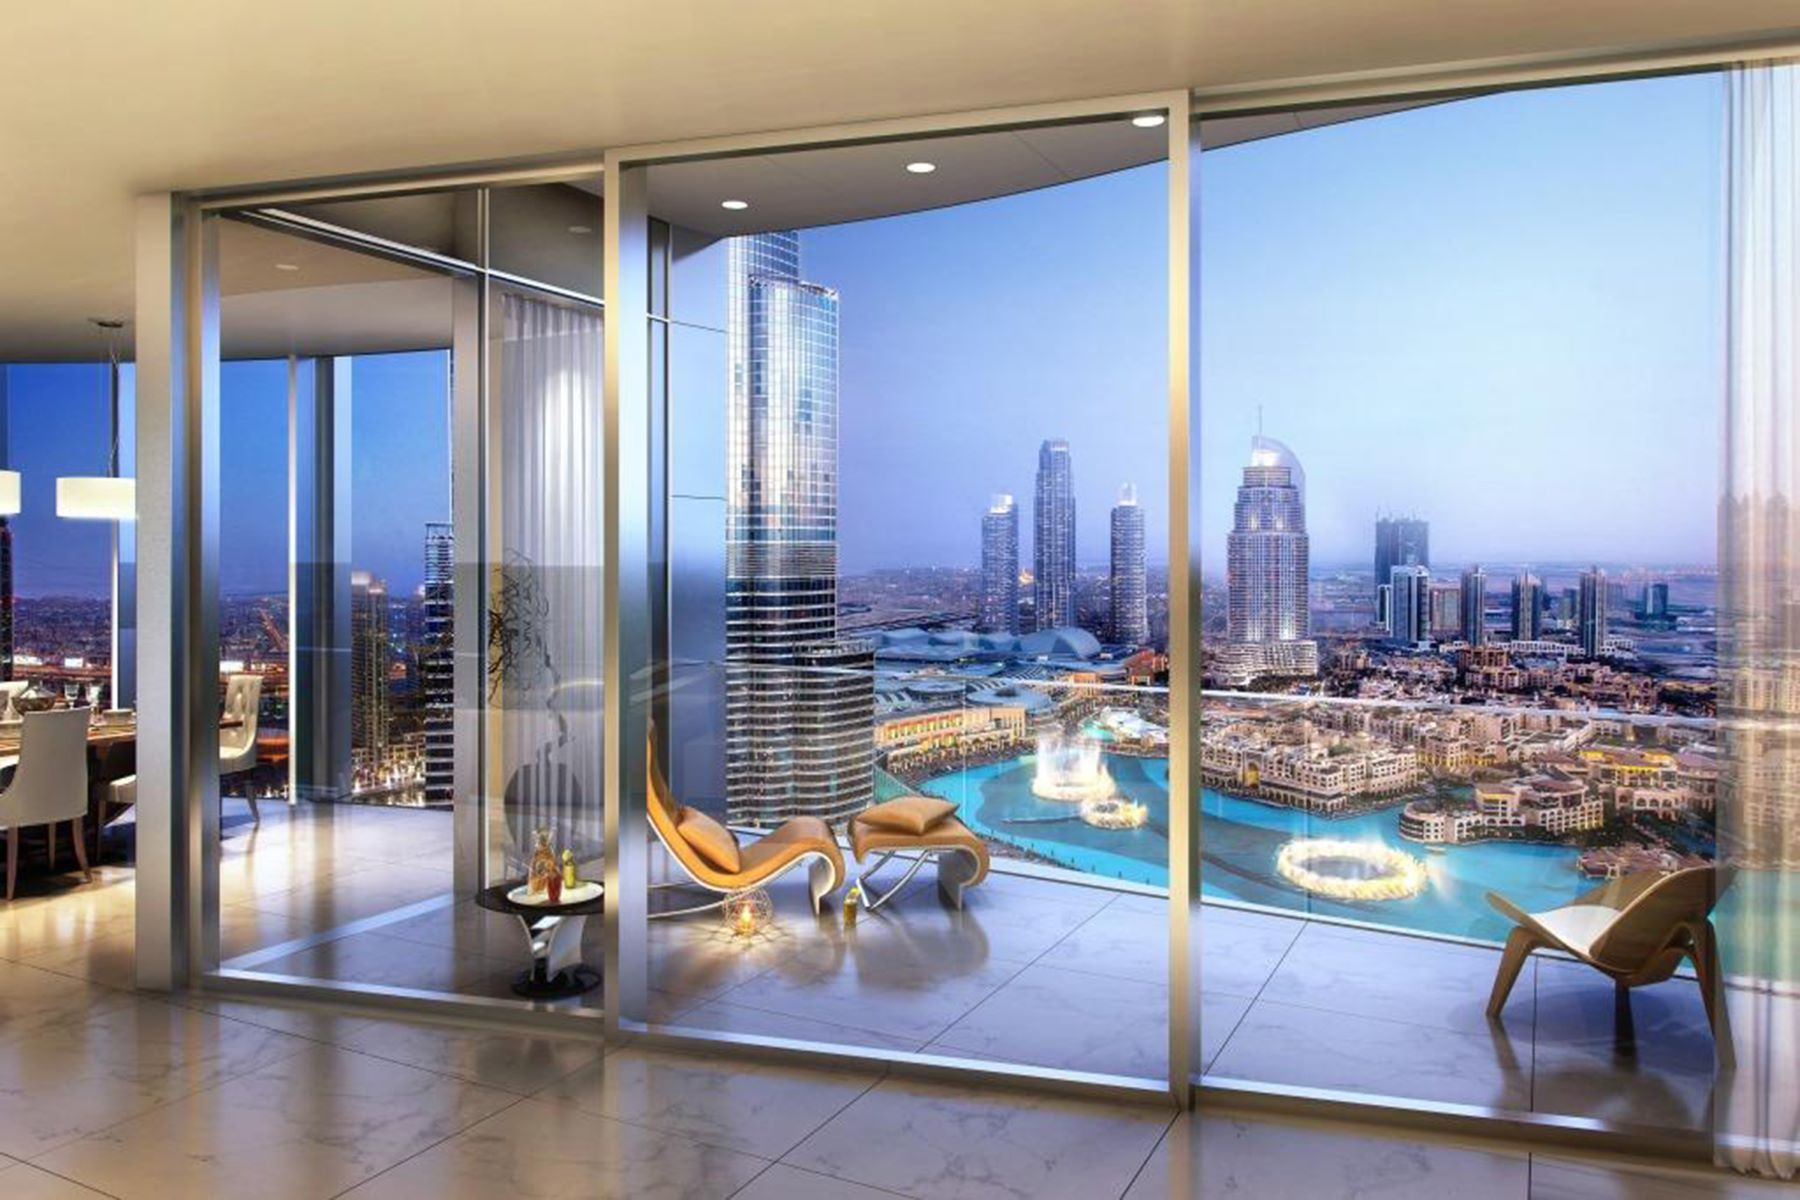 Apartment for Sale at 4BR Cosmopolitan Living With Fountain Views Downtown Dubai IL Primo, Dubai, 00000 United Arab Emirates